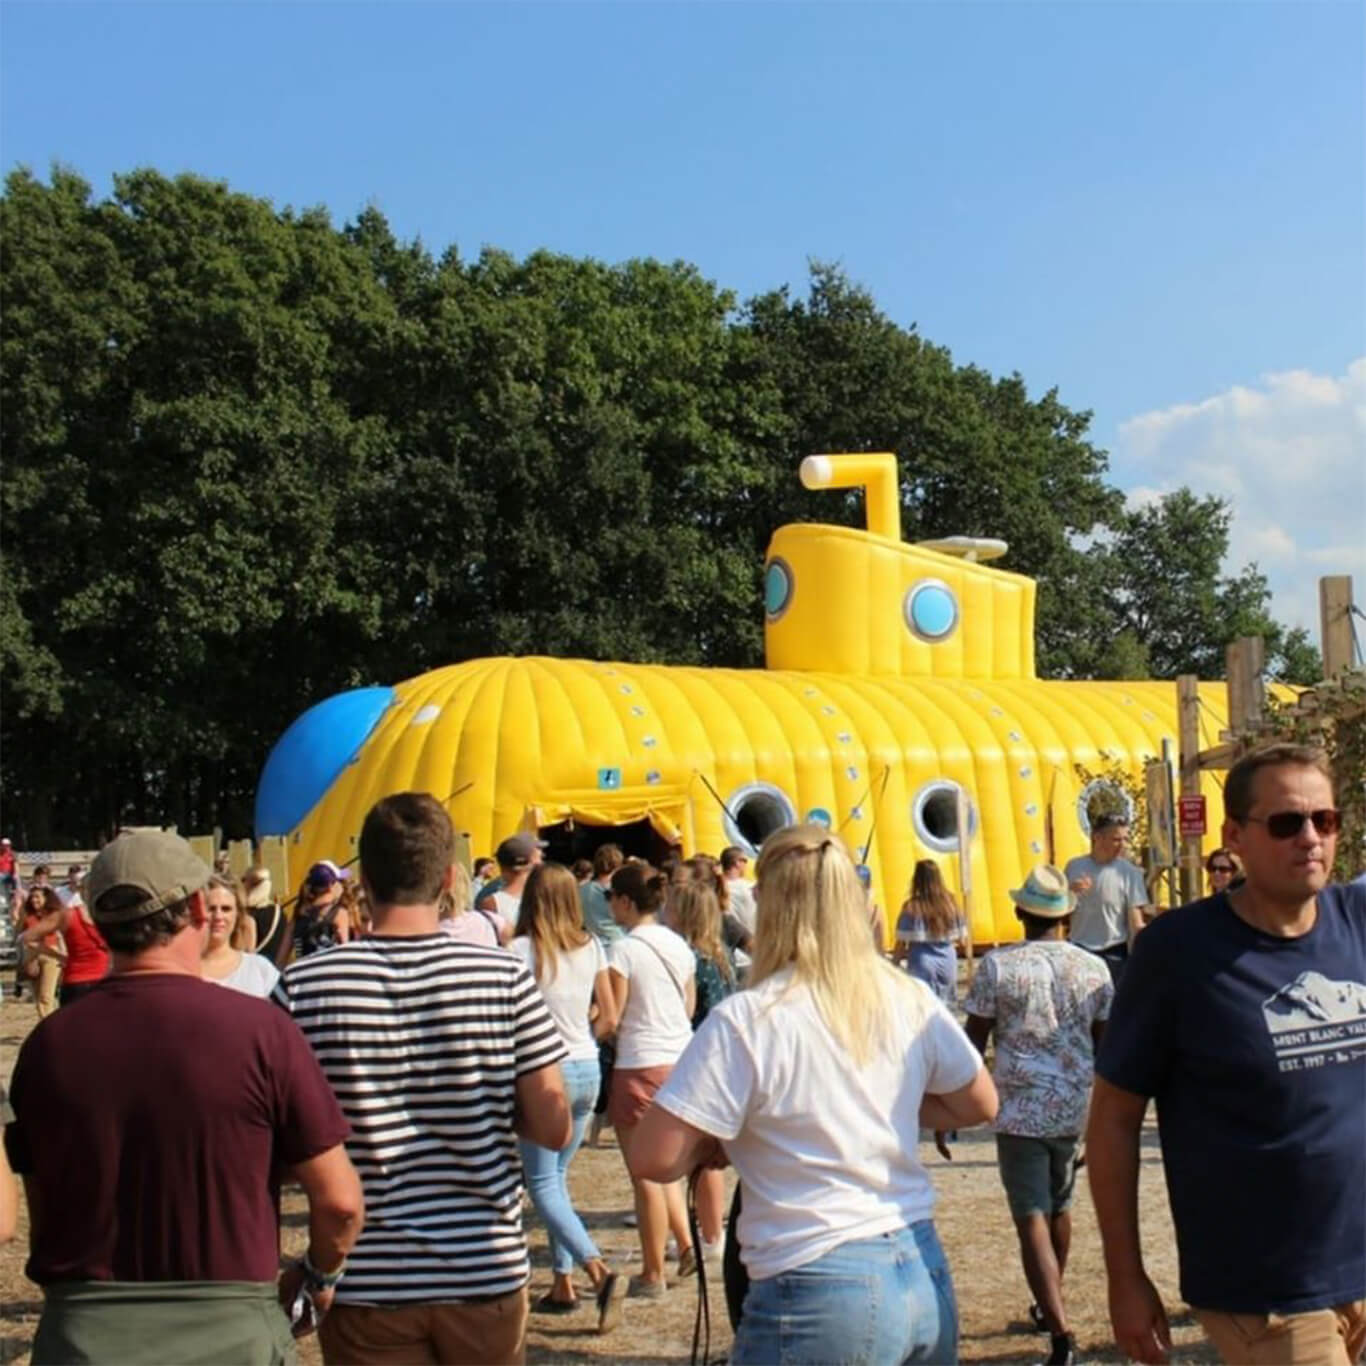 buurtfeest Perfecte tent yellow submarine